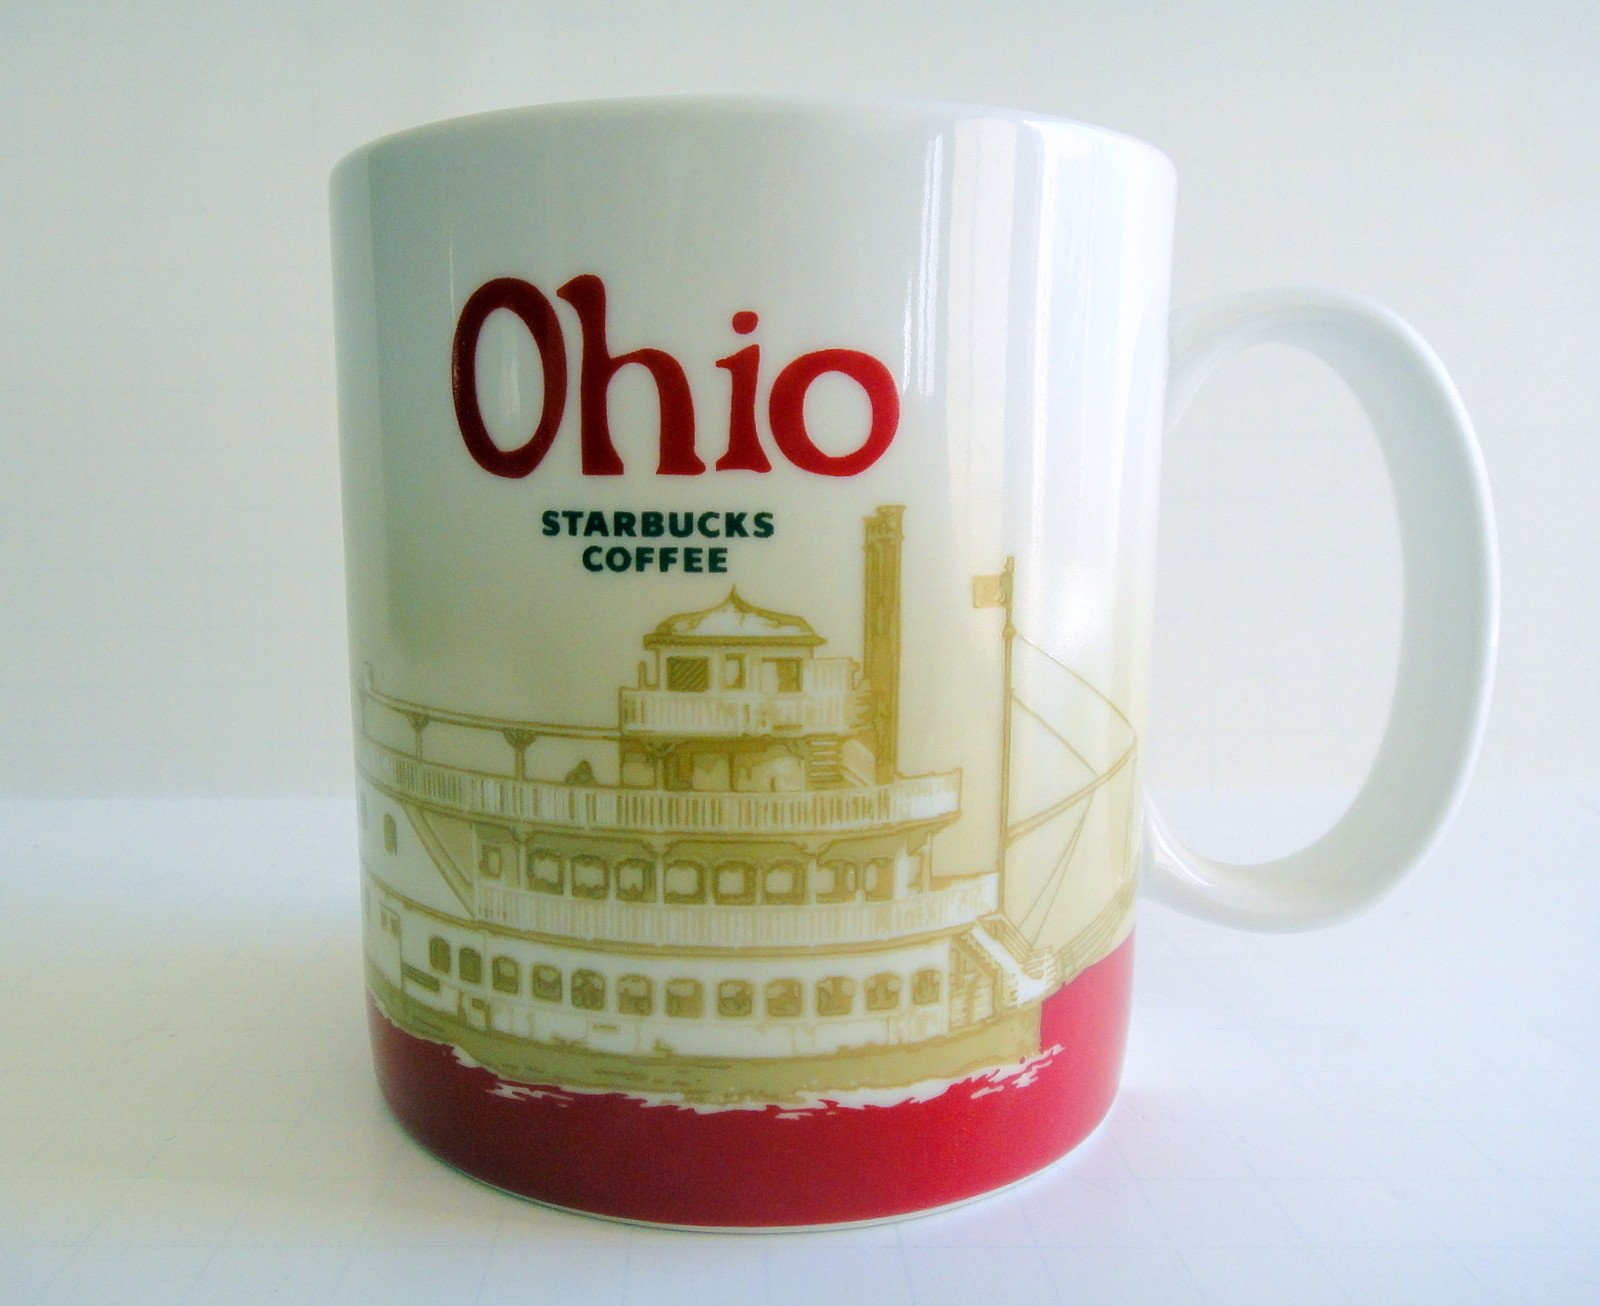 Starbucks Coffee 2011 Ohio Ceramic Mug 16 oz